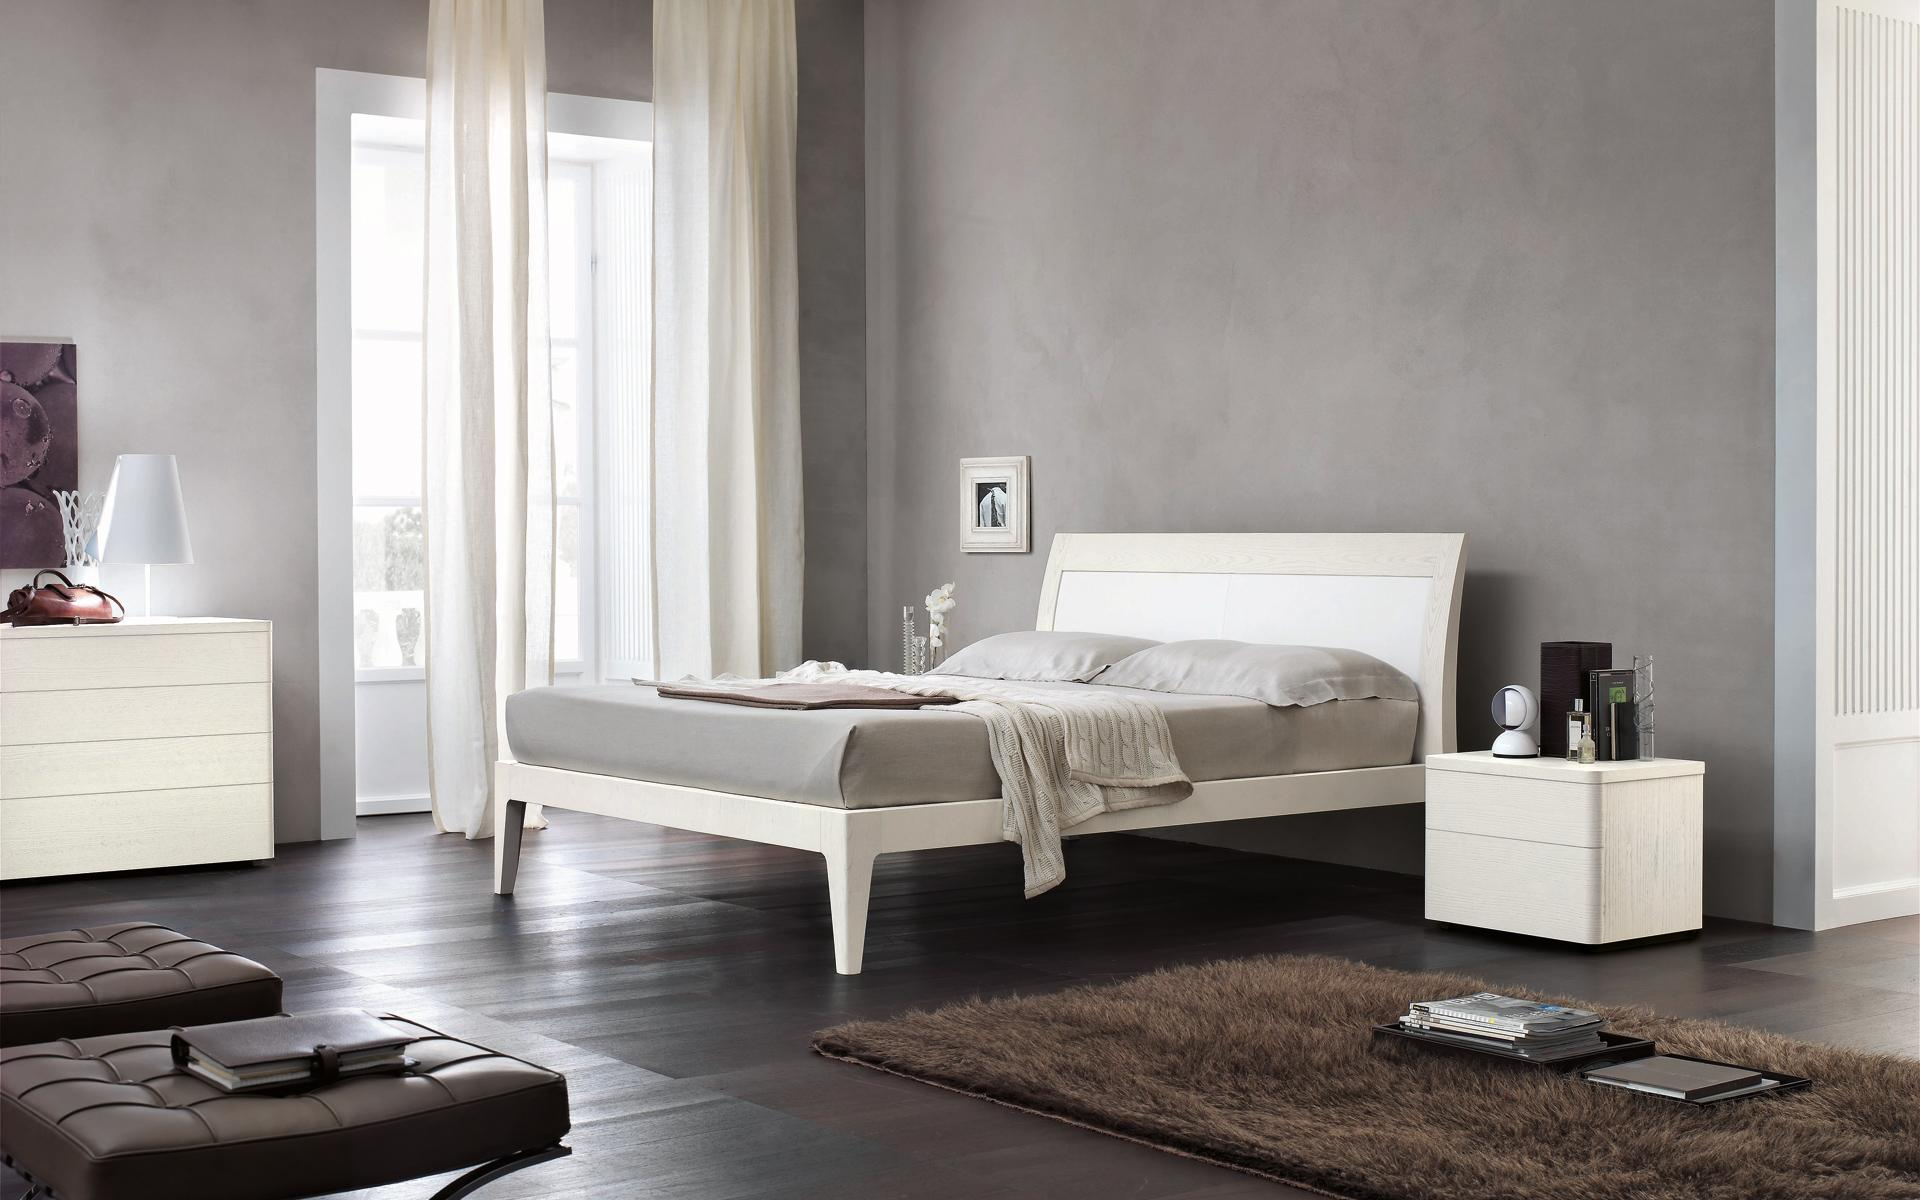 Idee Cartongesso Camera Da Letto : Idee in cartongesso per camera ...